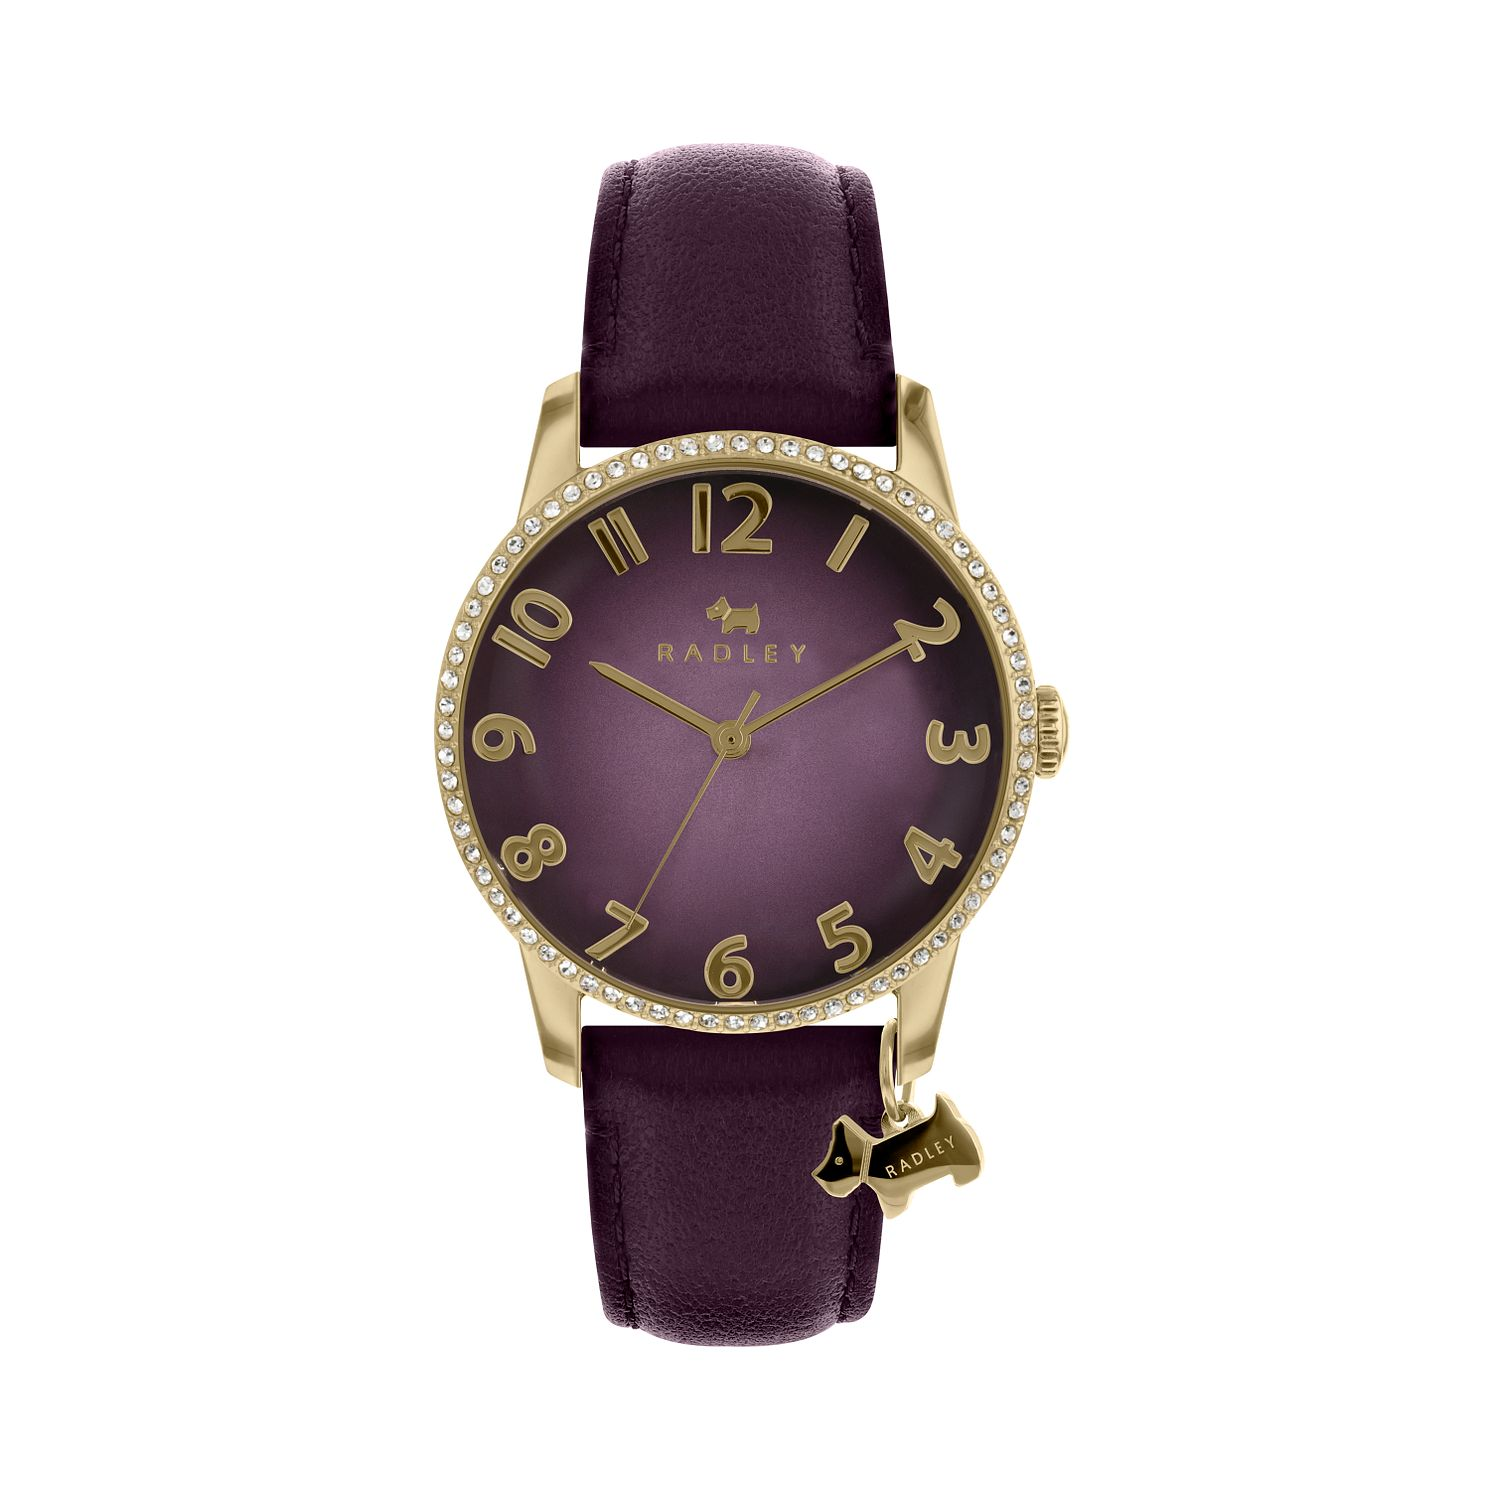 Radley Ladies' Purple Dial Leather Strap Watch - Product number 9734198